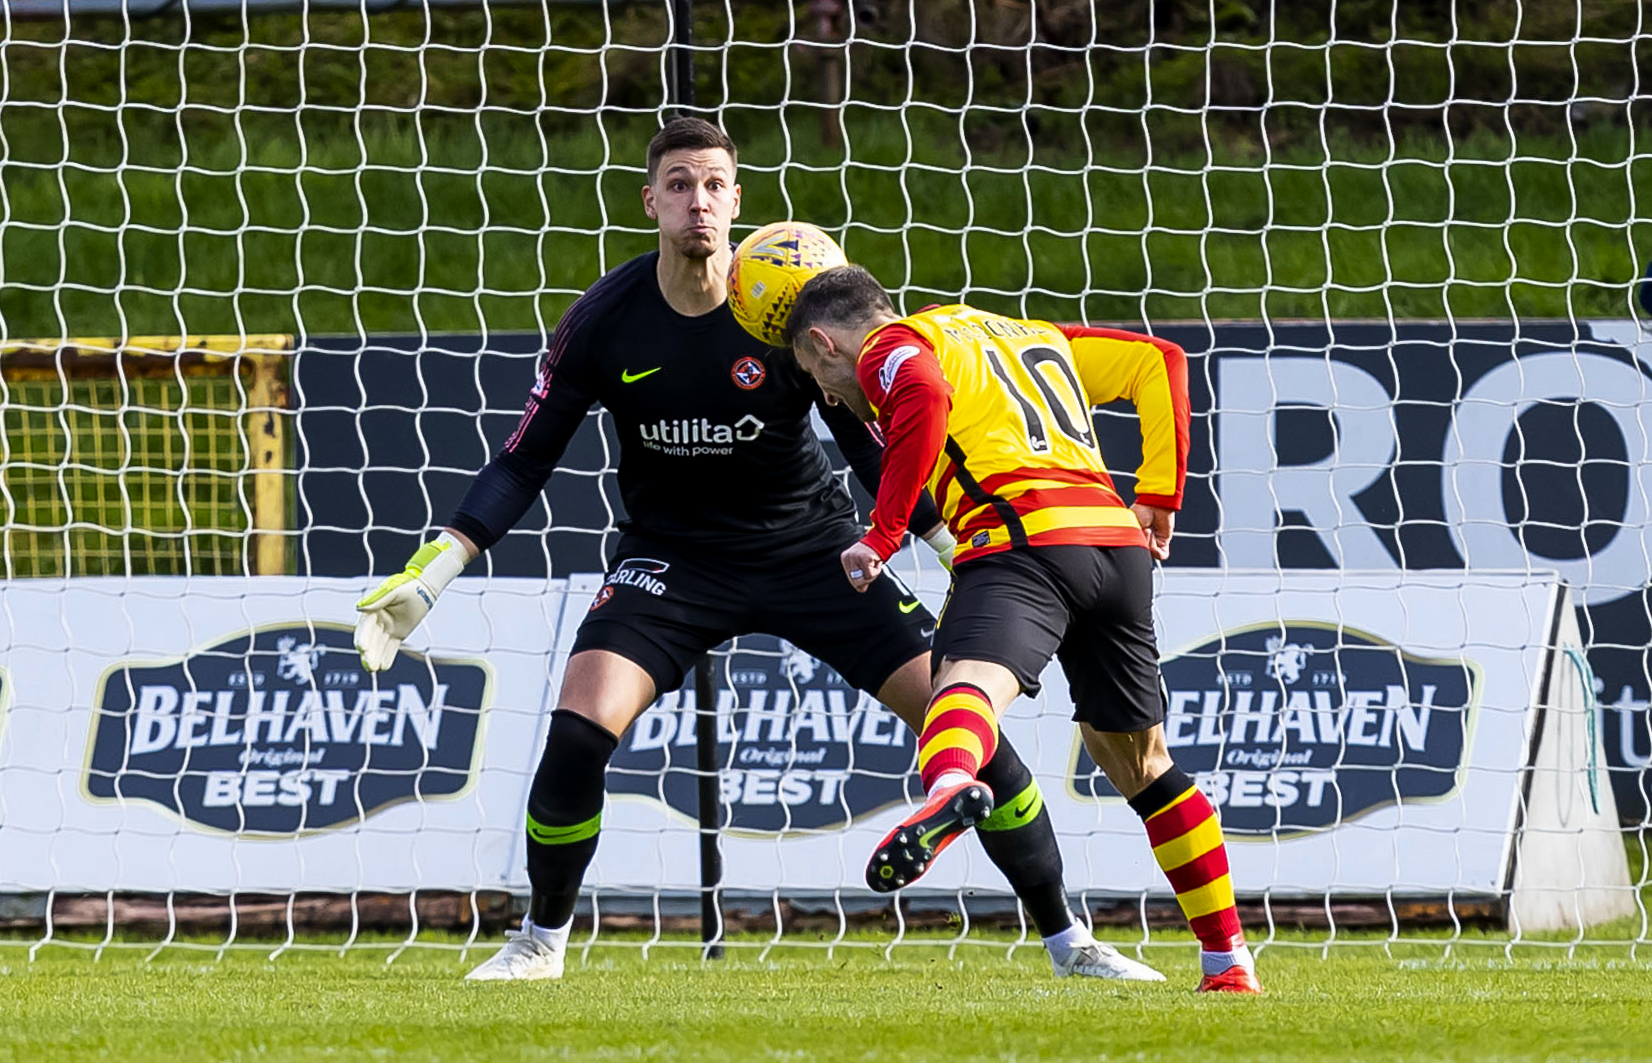 Former United man Scott McDonald scores to make it 1-0 to Partick Thistle.